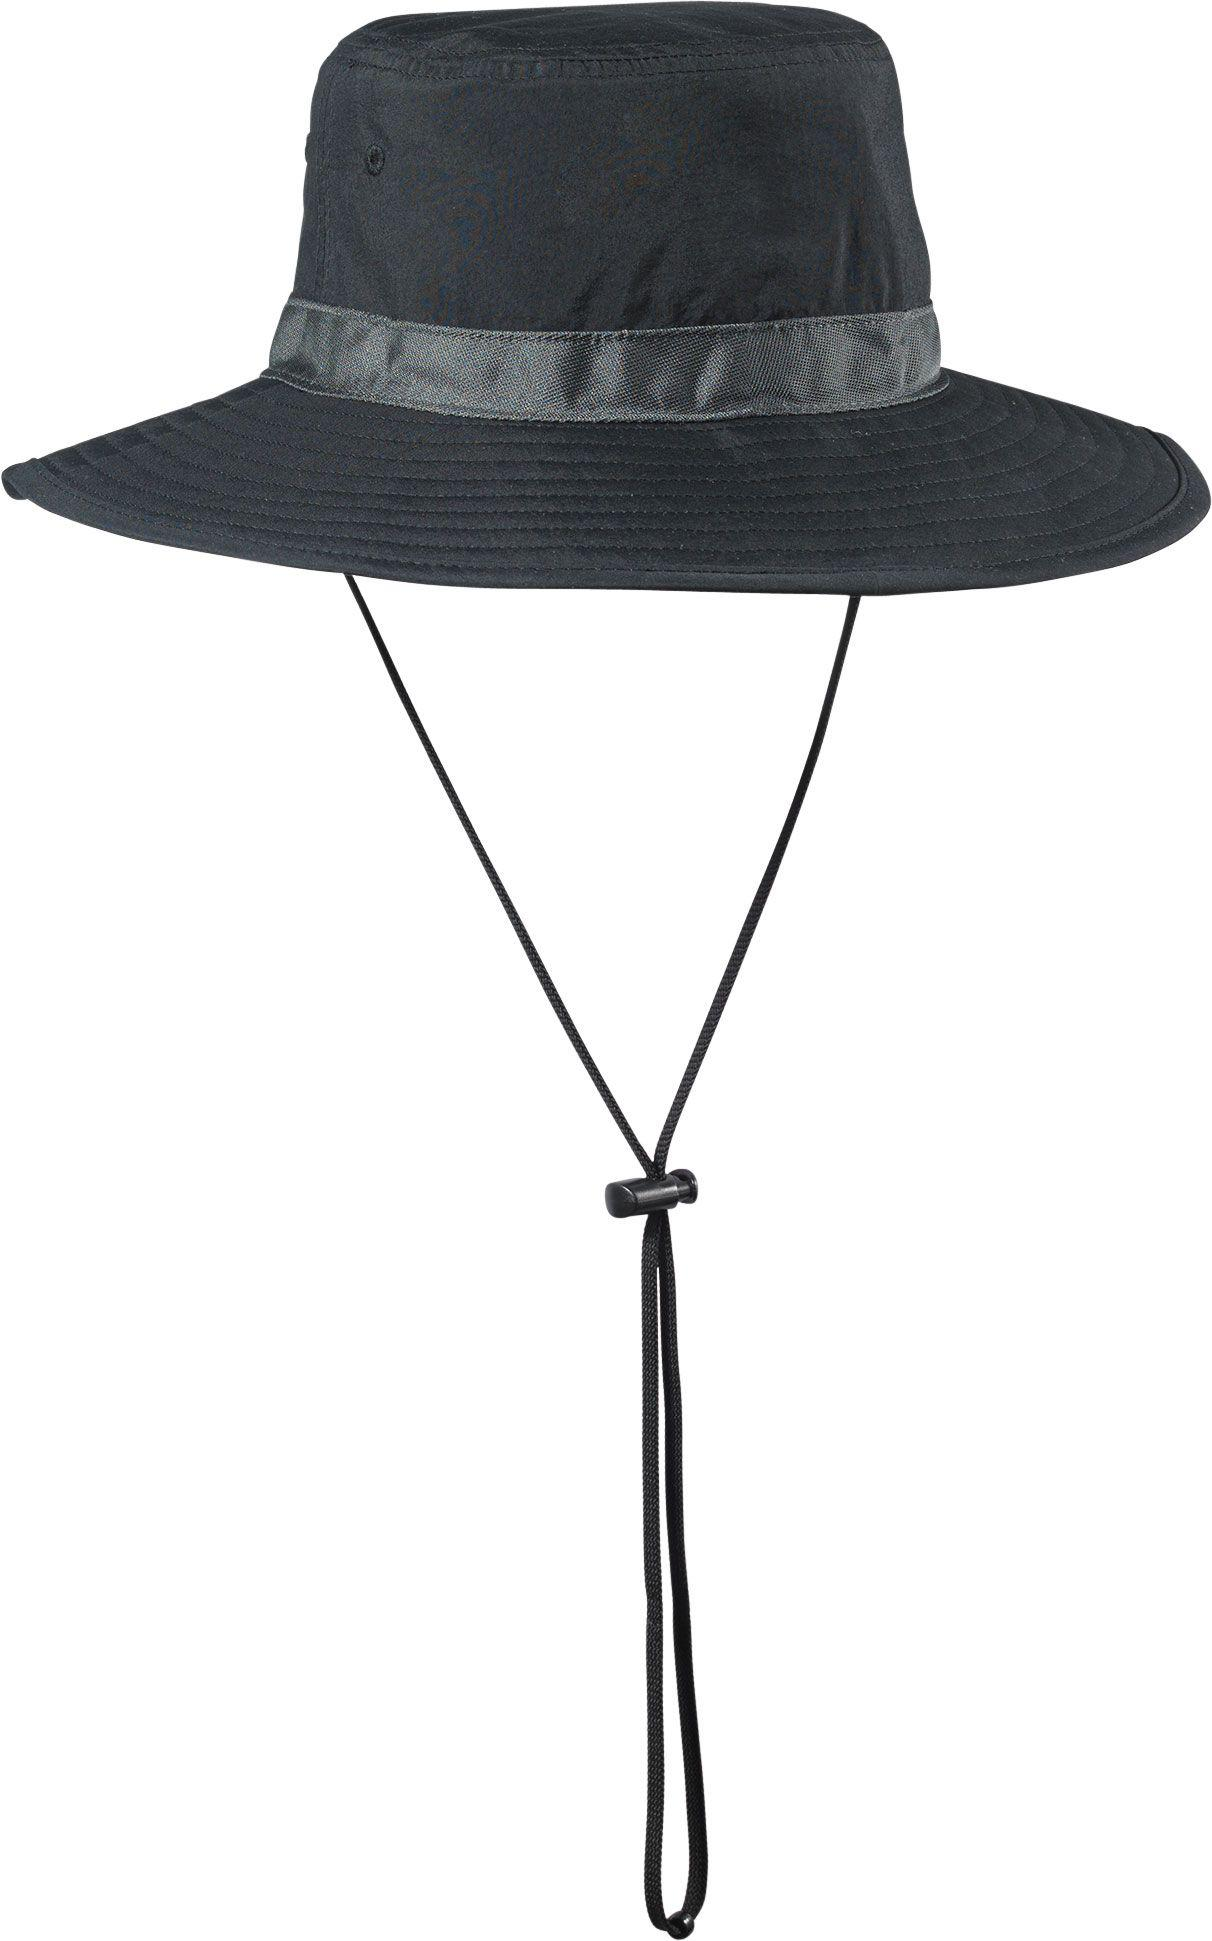 95327785 ... france lyst nike sideline bucket hat in black for men 15b38 5fcd6